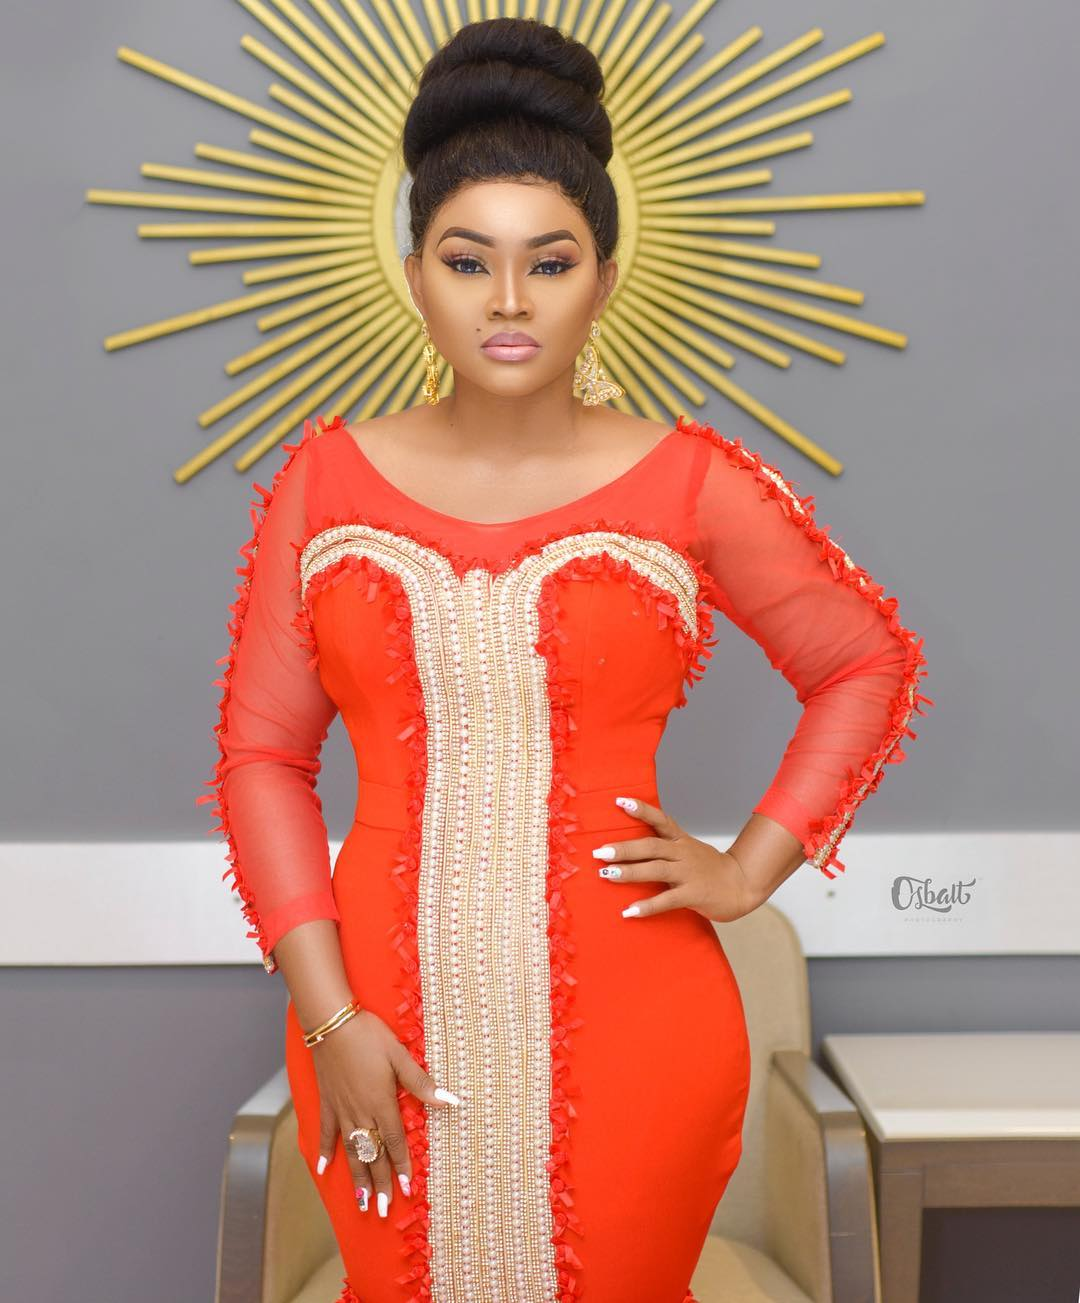 47583559 588287058287211 4864963465108012090 n - Mercy Aigbe Shares Sizzling Photos to Mark Her 41st Birthday